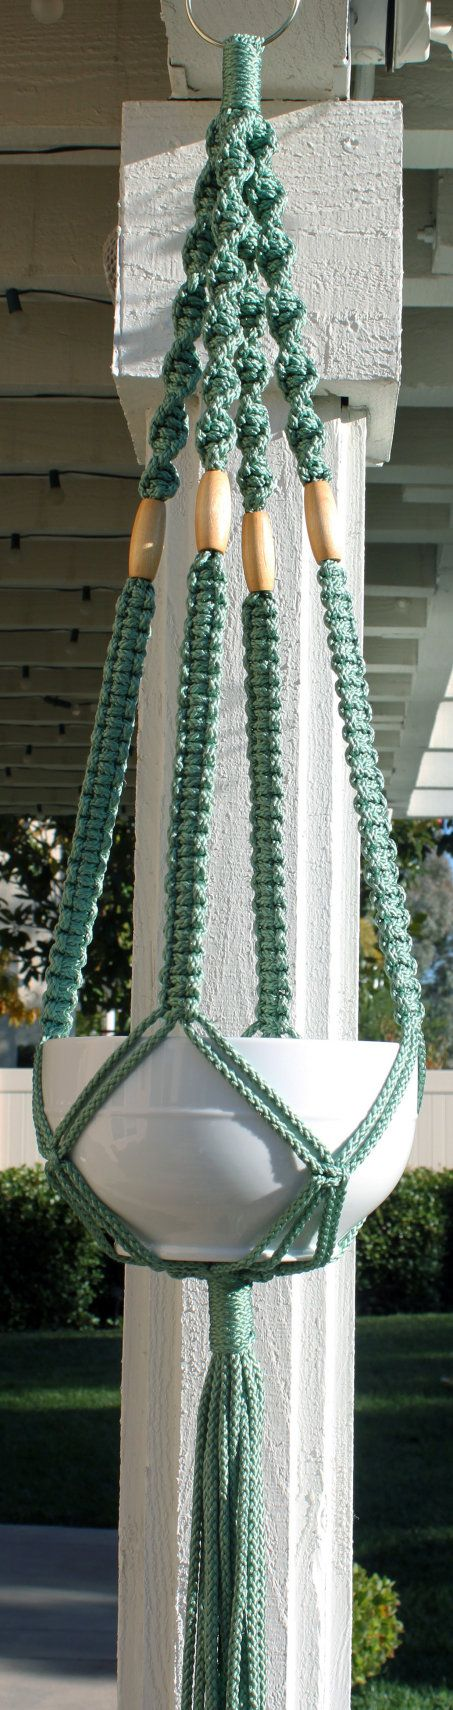 Handmade Blue Green Teal Macrame Plant Hanger Holder with Wood Beads.